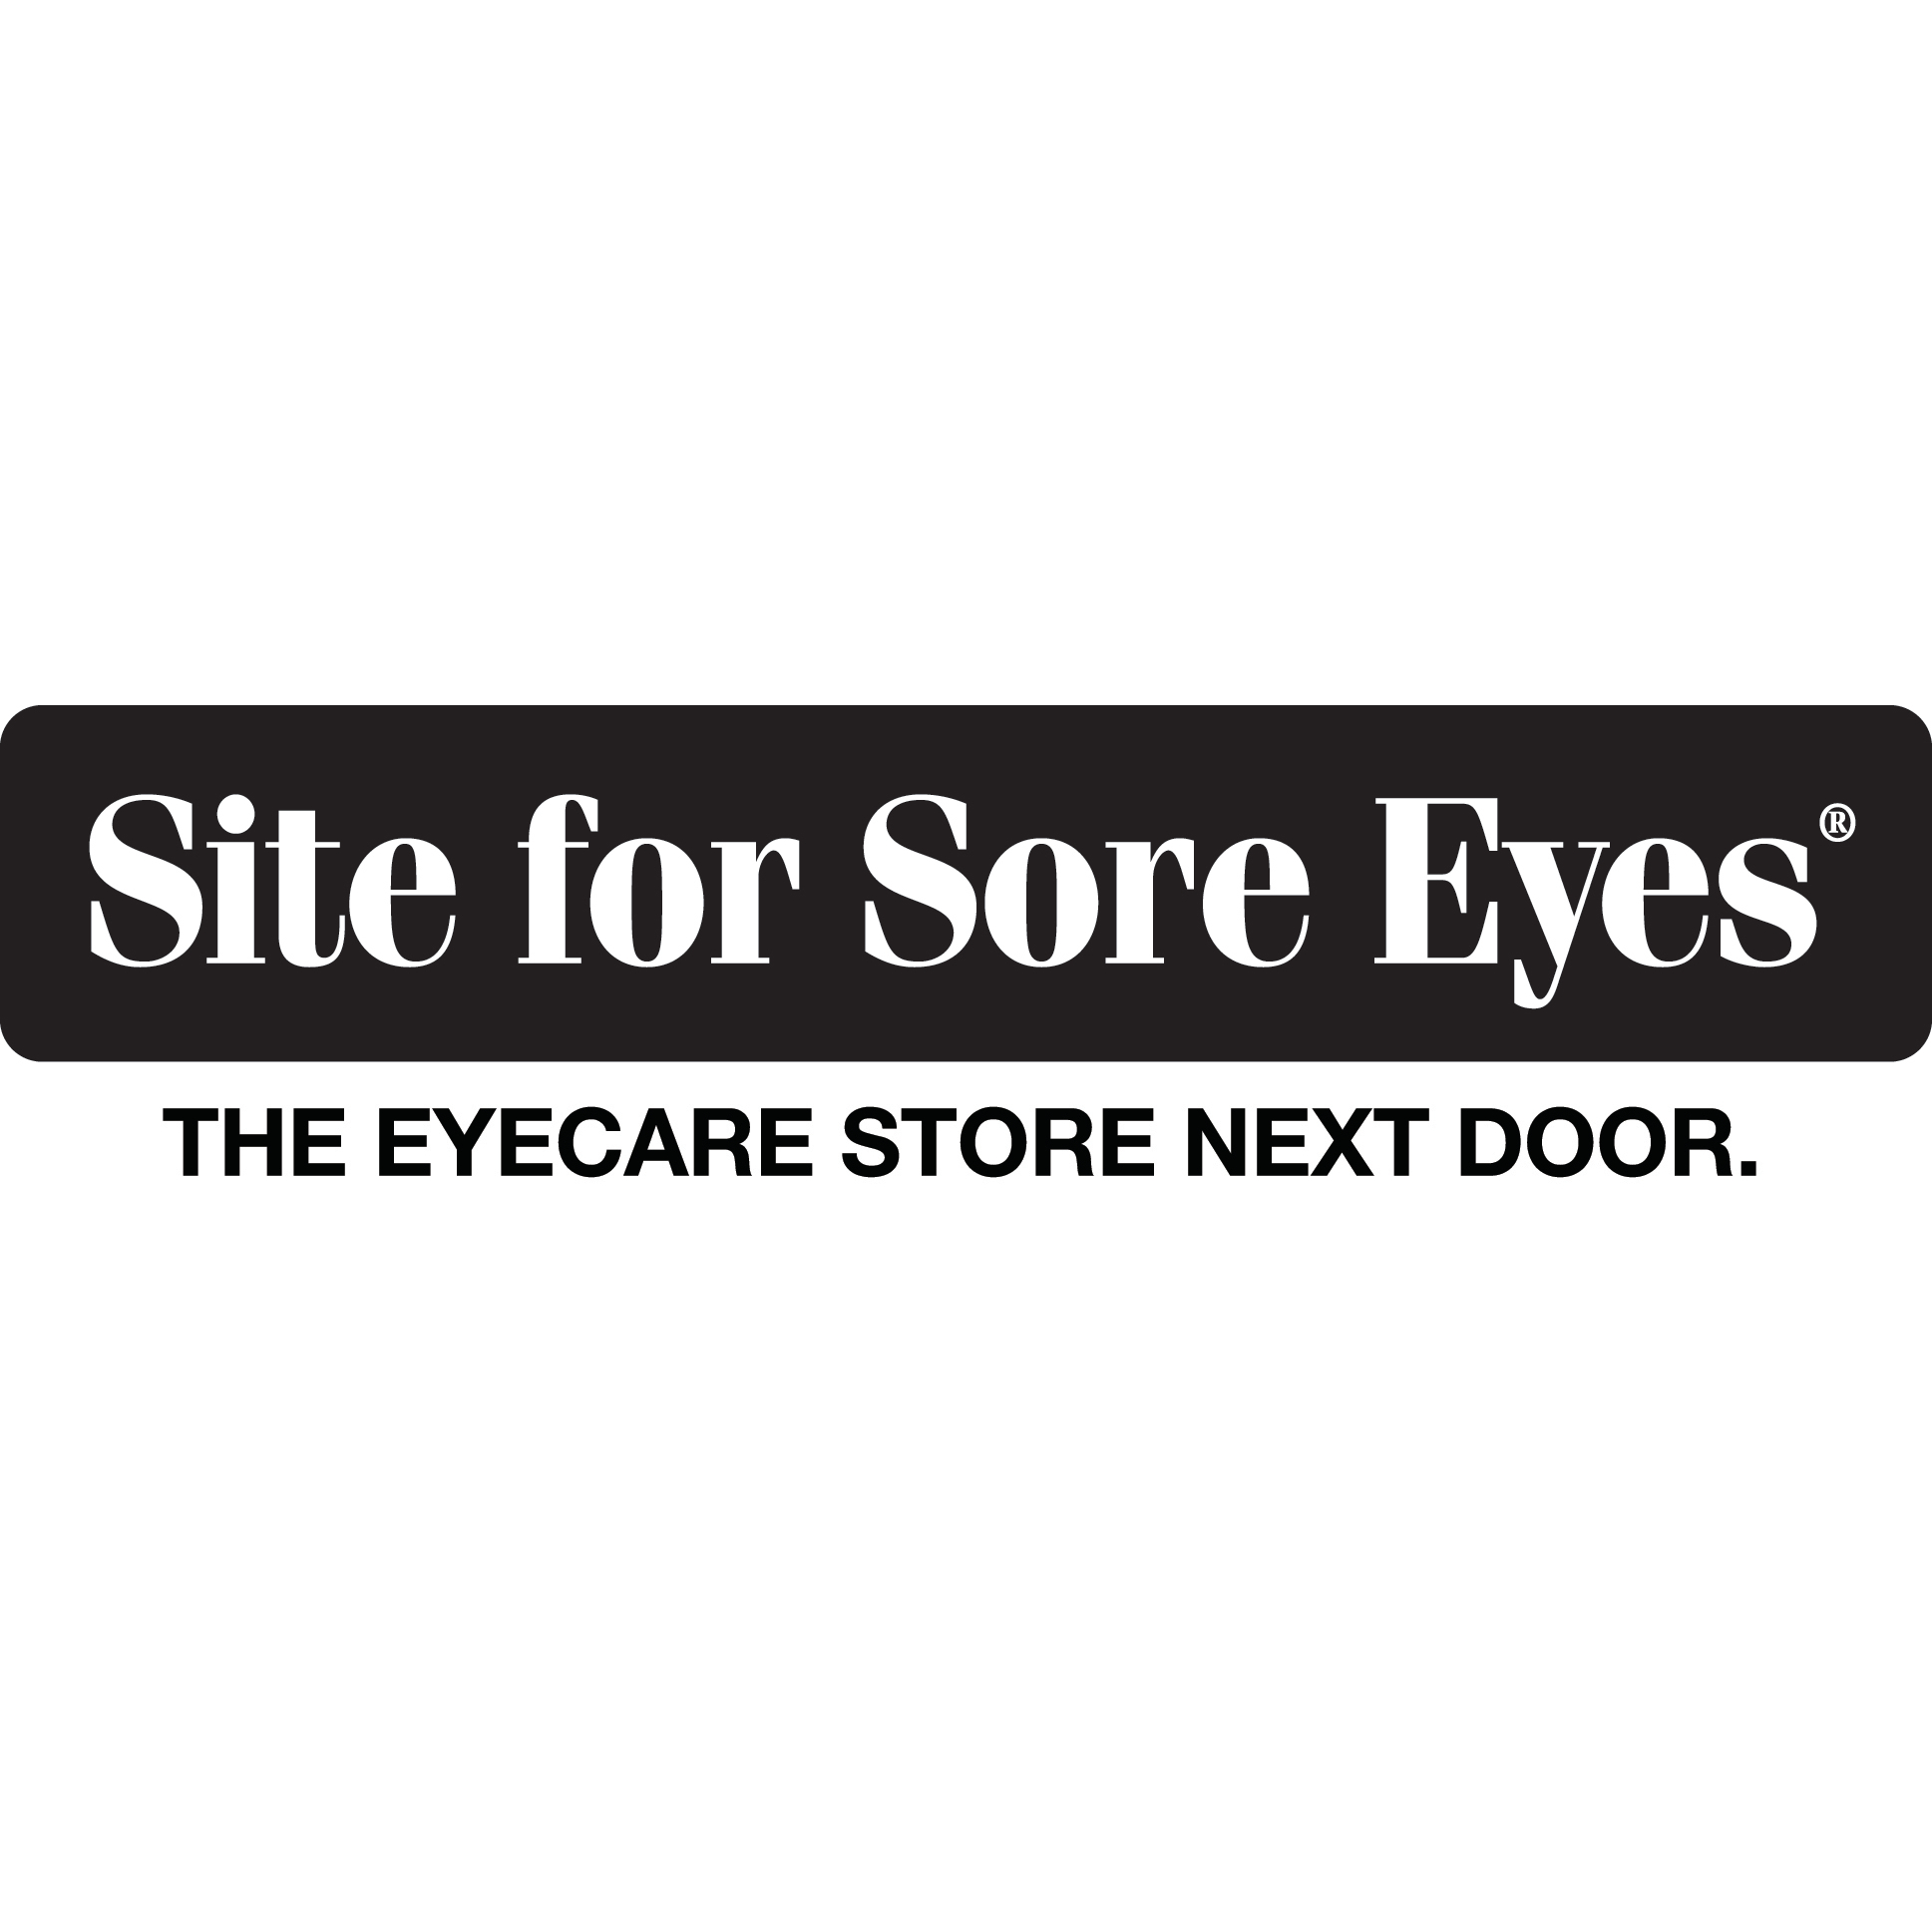 Site for Sore Eyes image 9